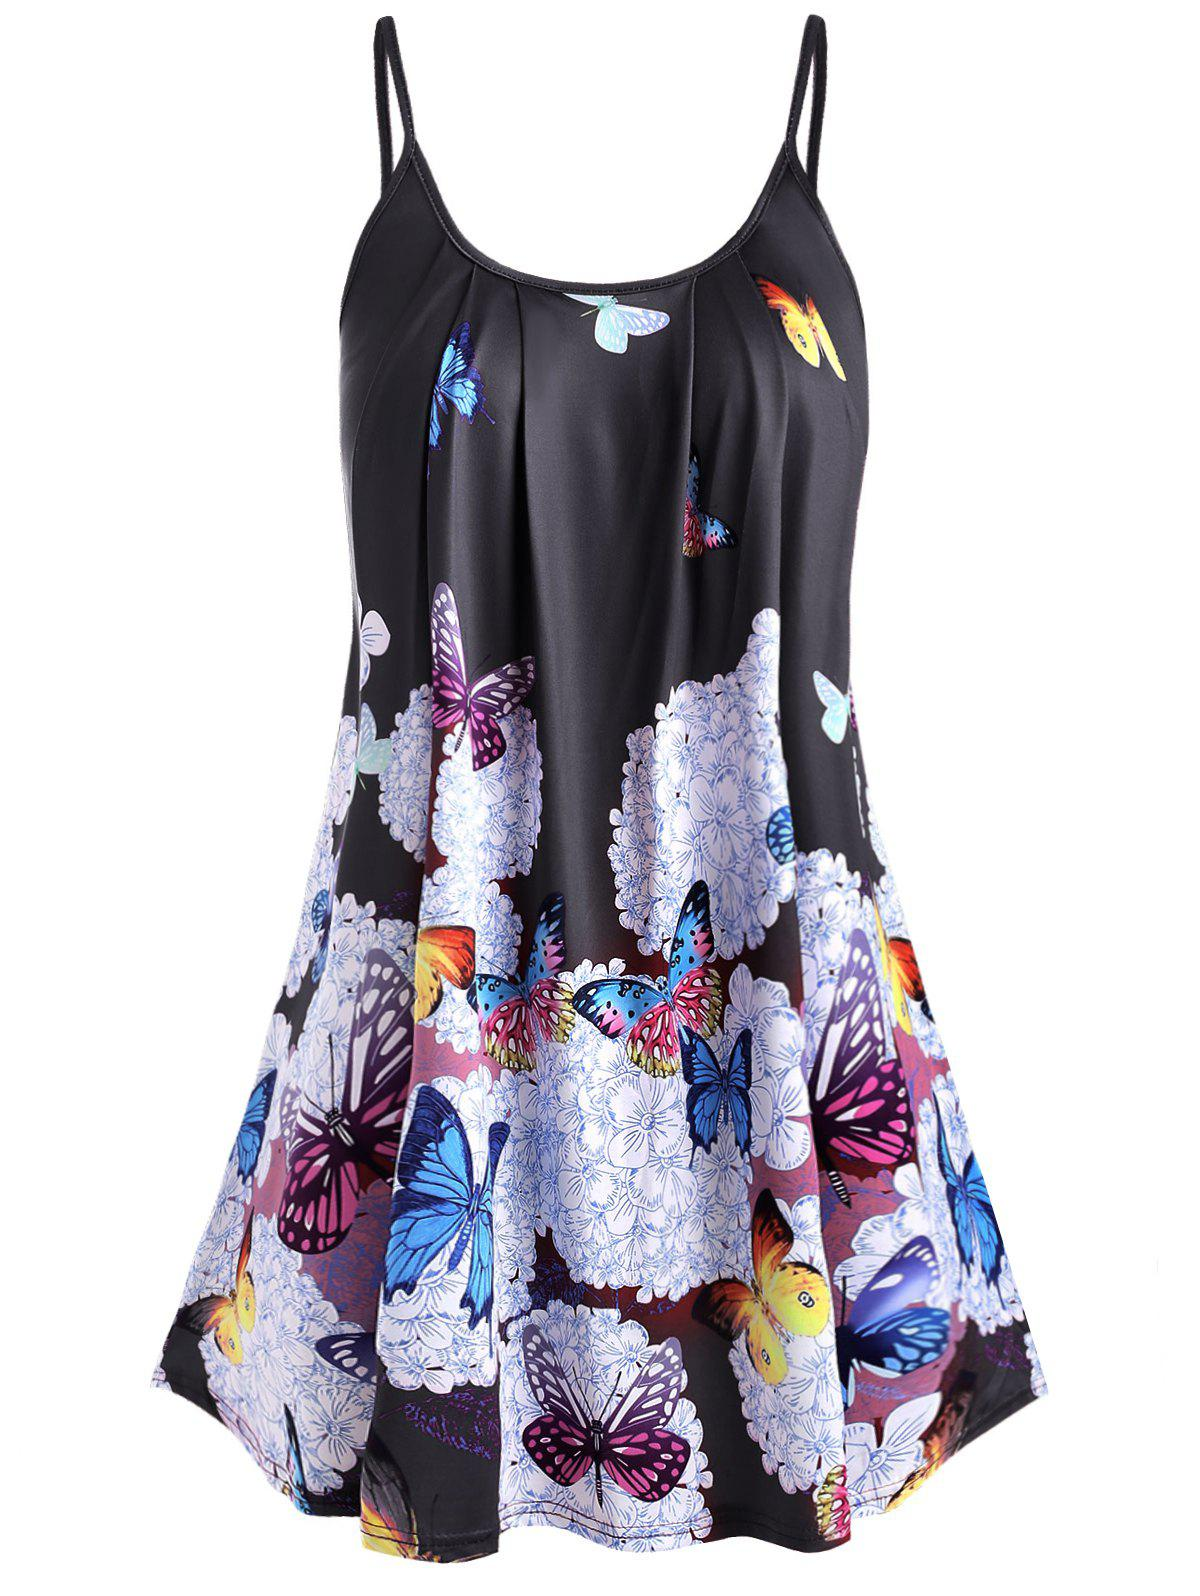 Plus Size Butterfly Print Cami Top - BLACK 5X